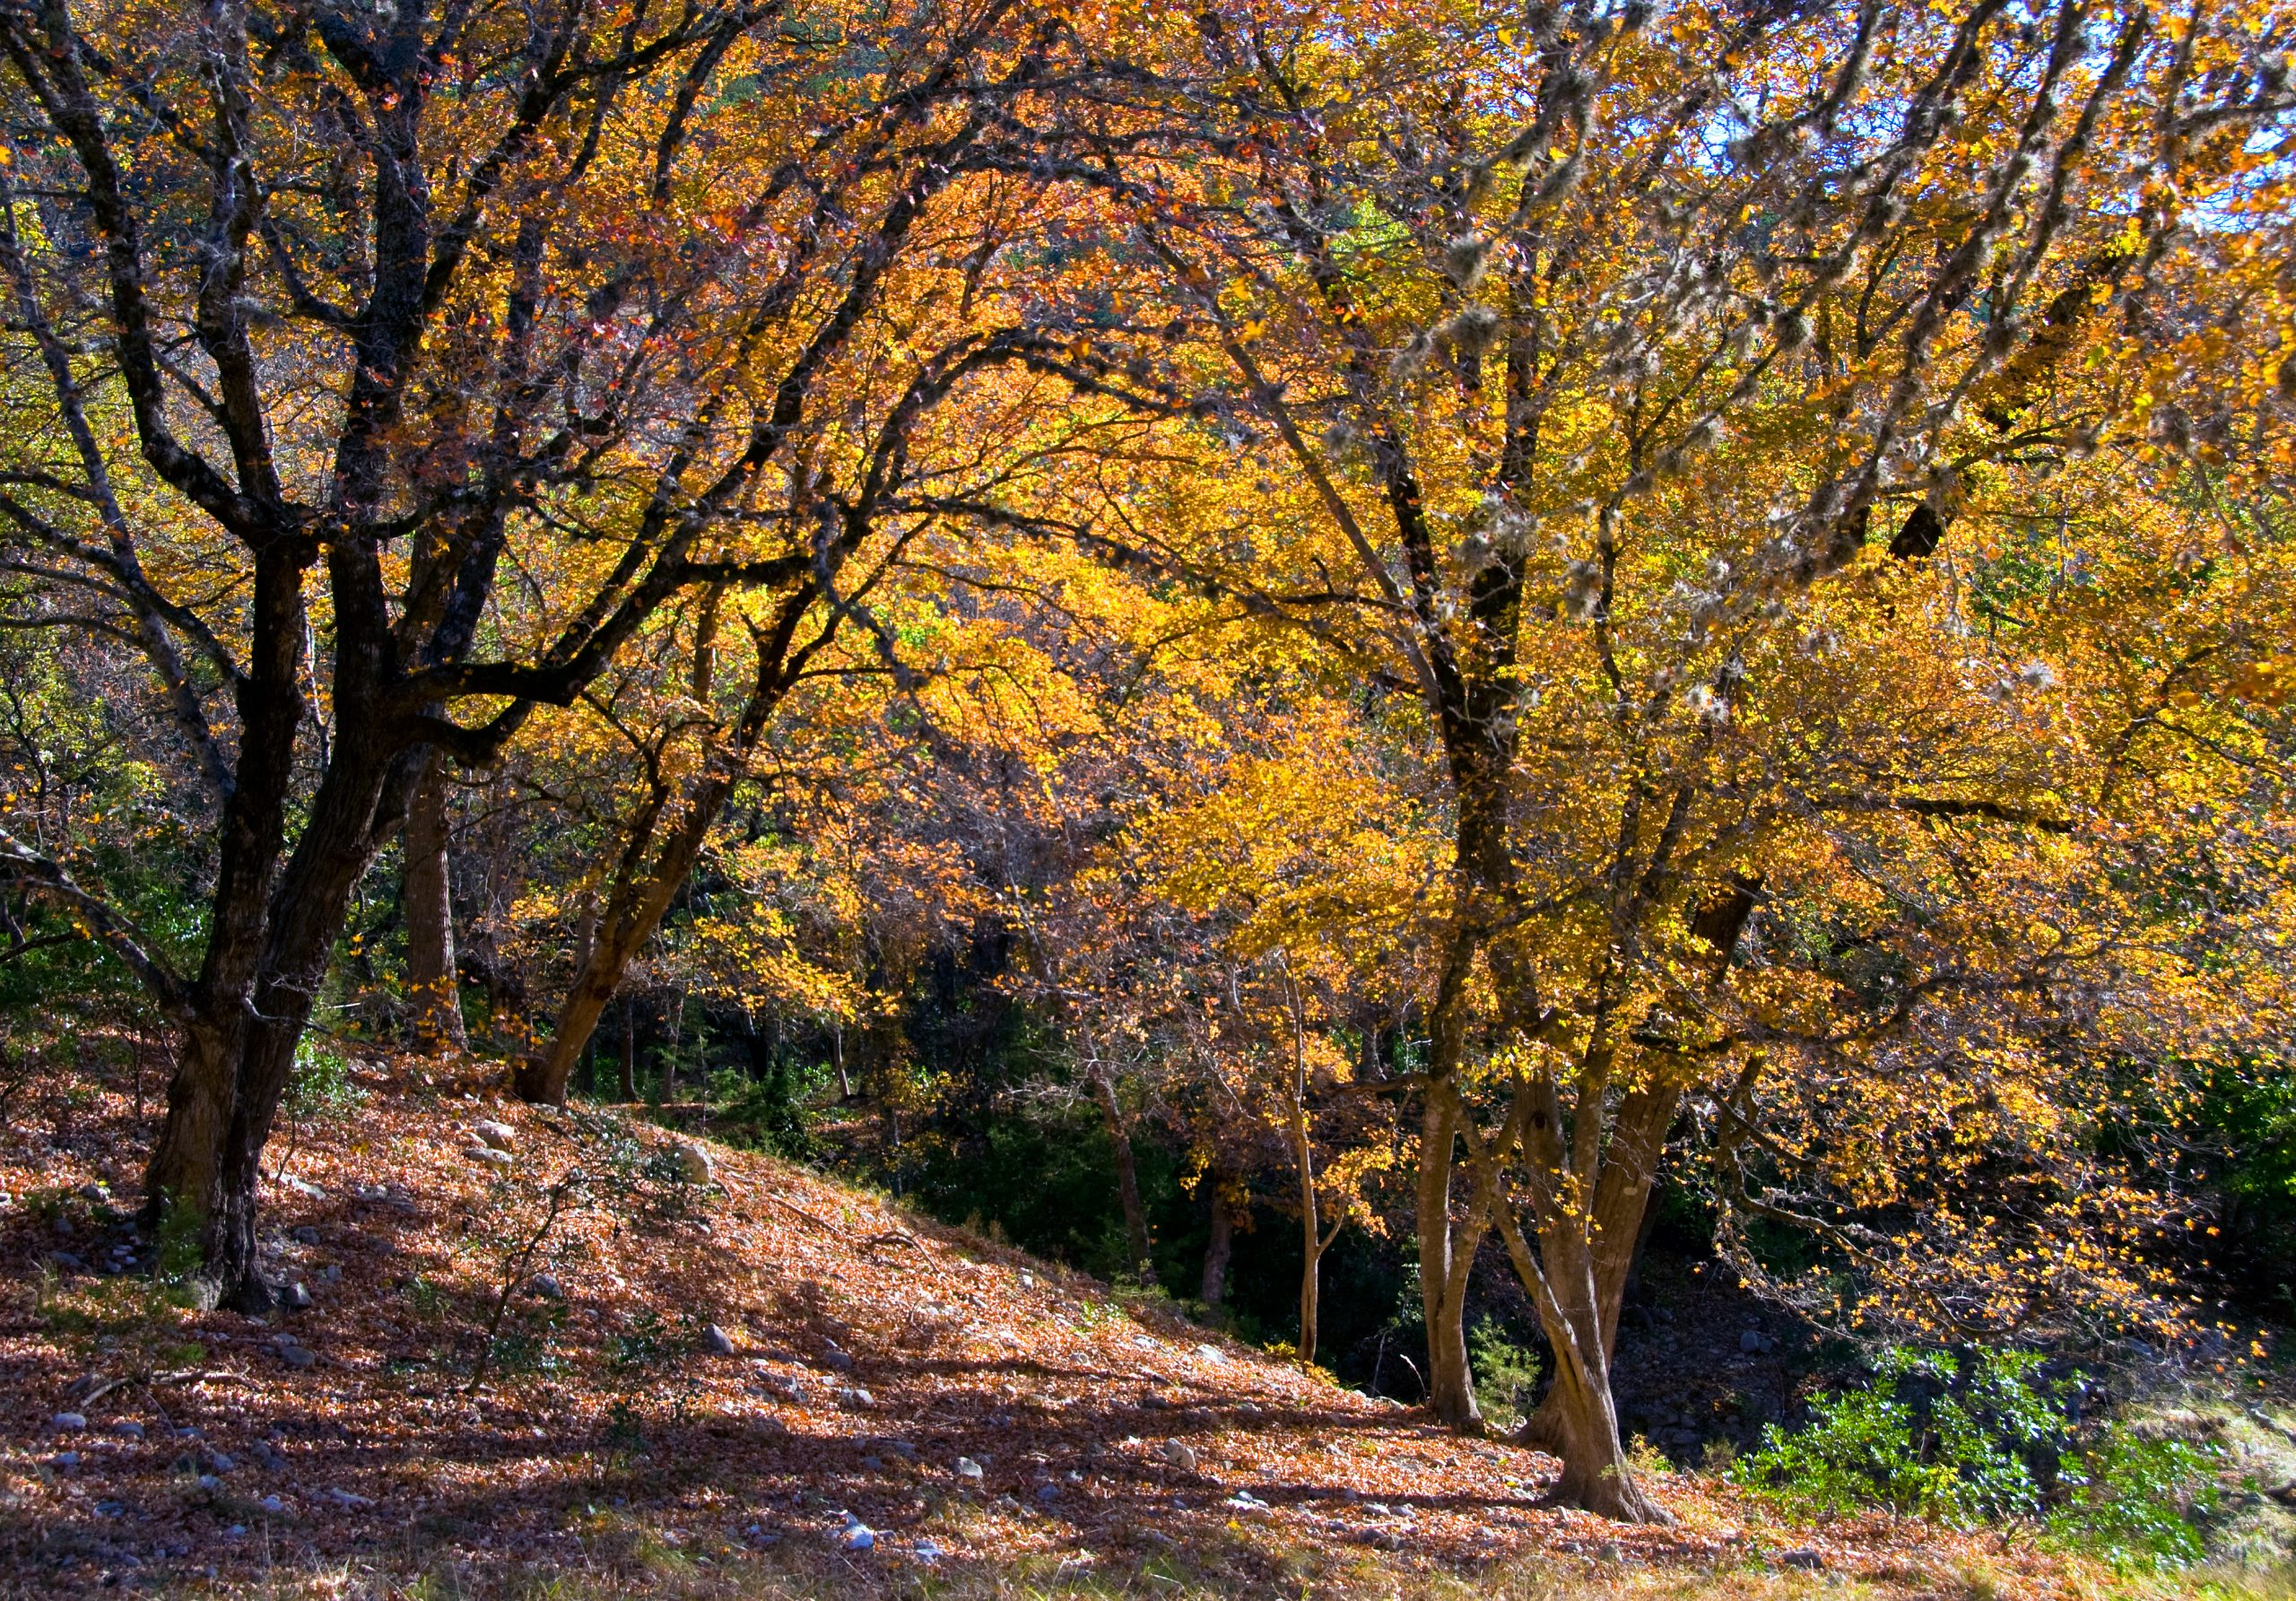 bright orange trees in fall as seen on a hike lost maples state natural area texas